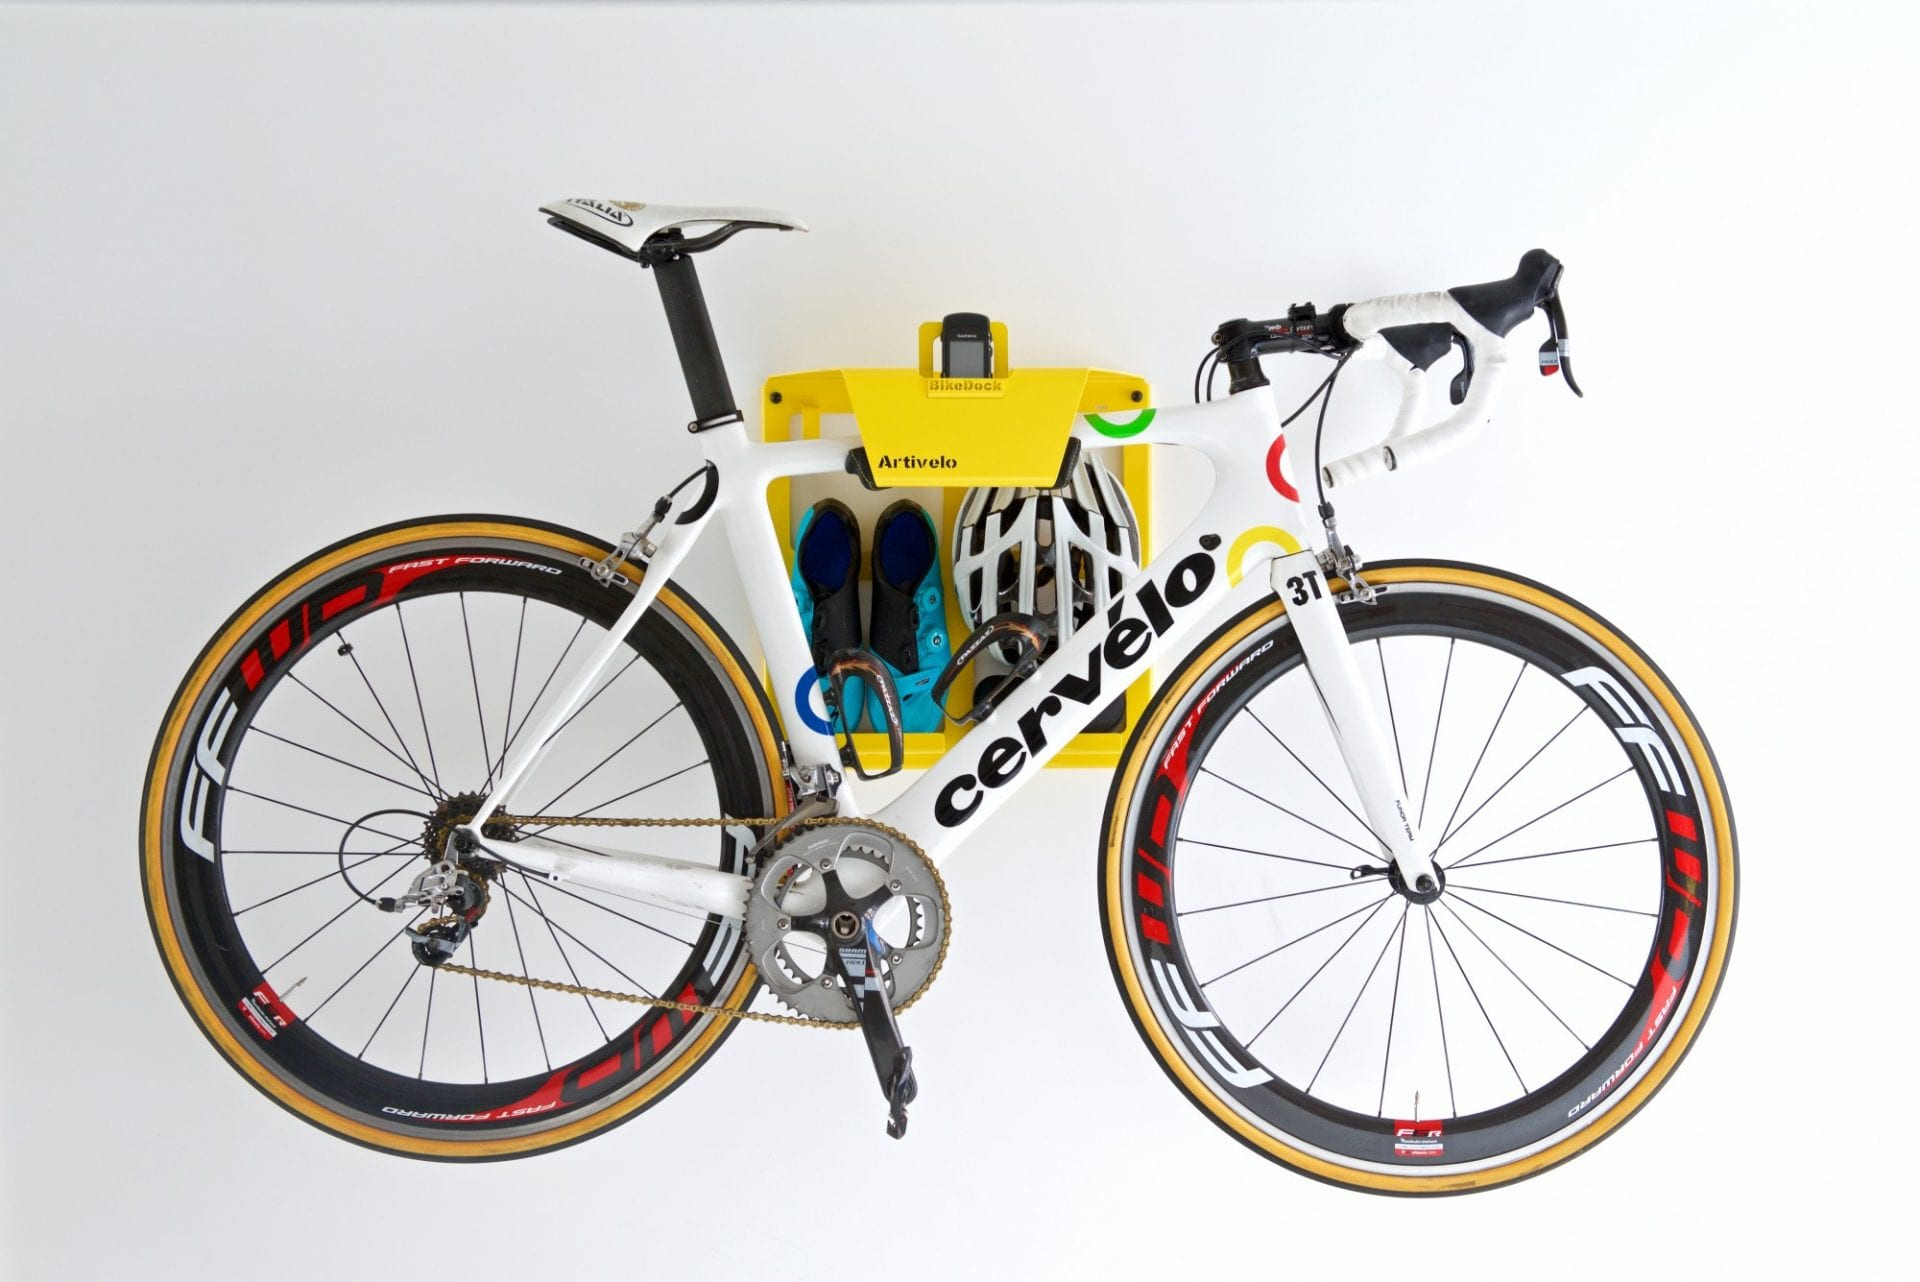 Artivelo's clean and simple bike storage